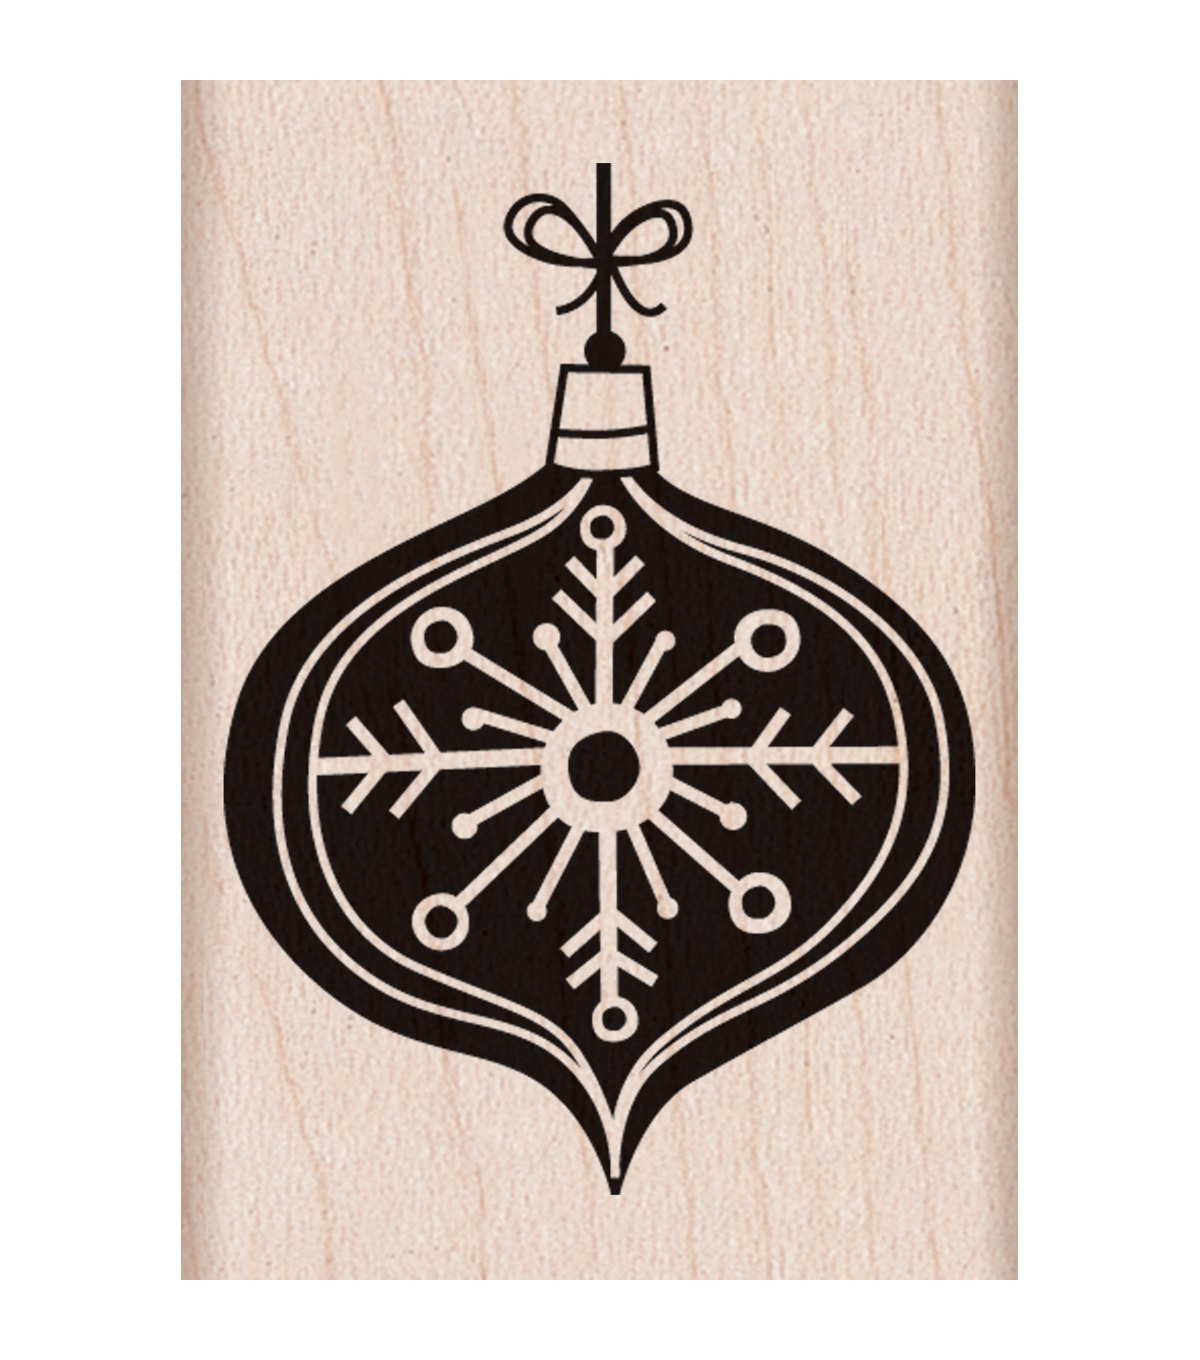 Hero Arts Wood Mounted Rubber Stamp-Chalkboard Ornament